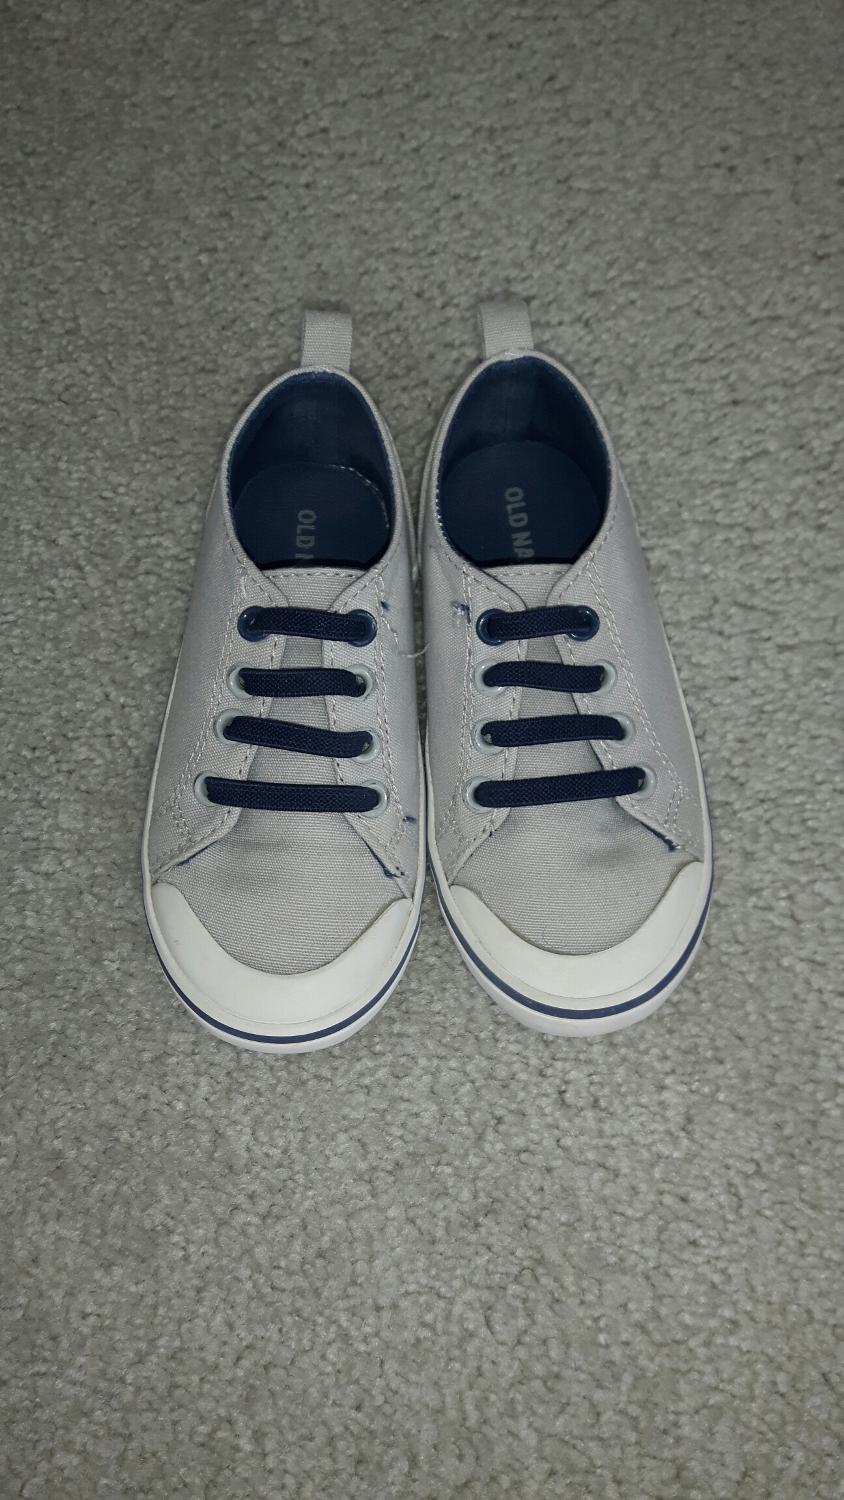 Shop Kids' Old Navy Blue size 2BB Sandals & Flip Flops at a discounted price at Poshmark. Description: EUC. Sold by starneschelsea. Fast delivery, full service customer support.